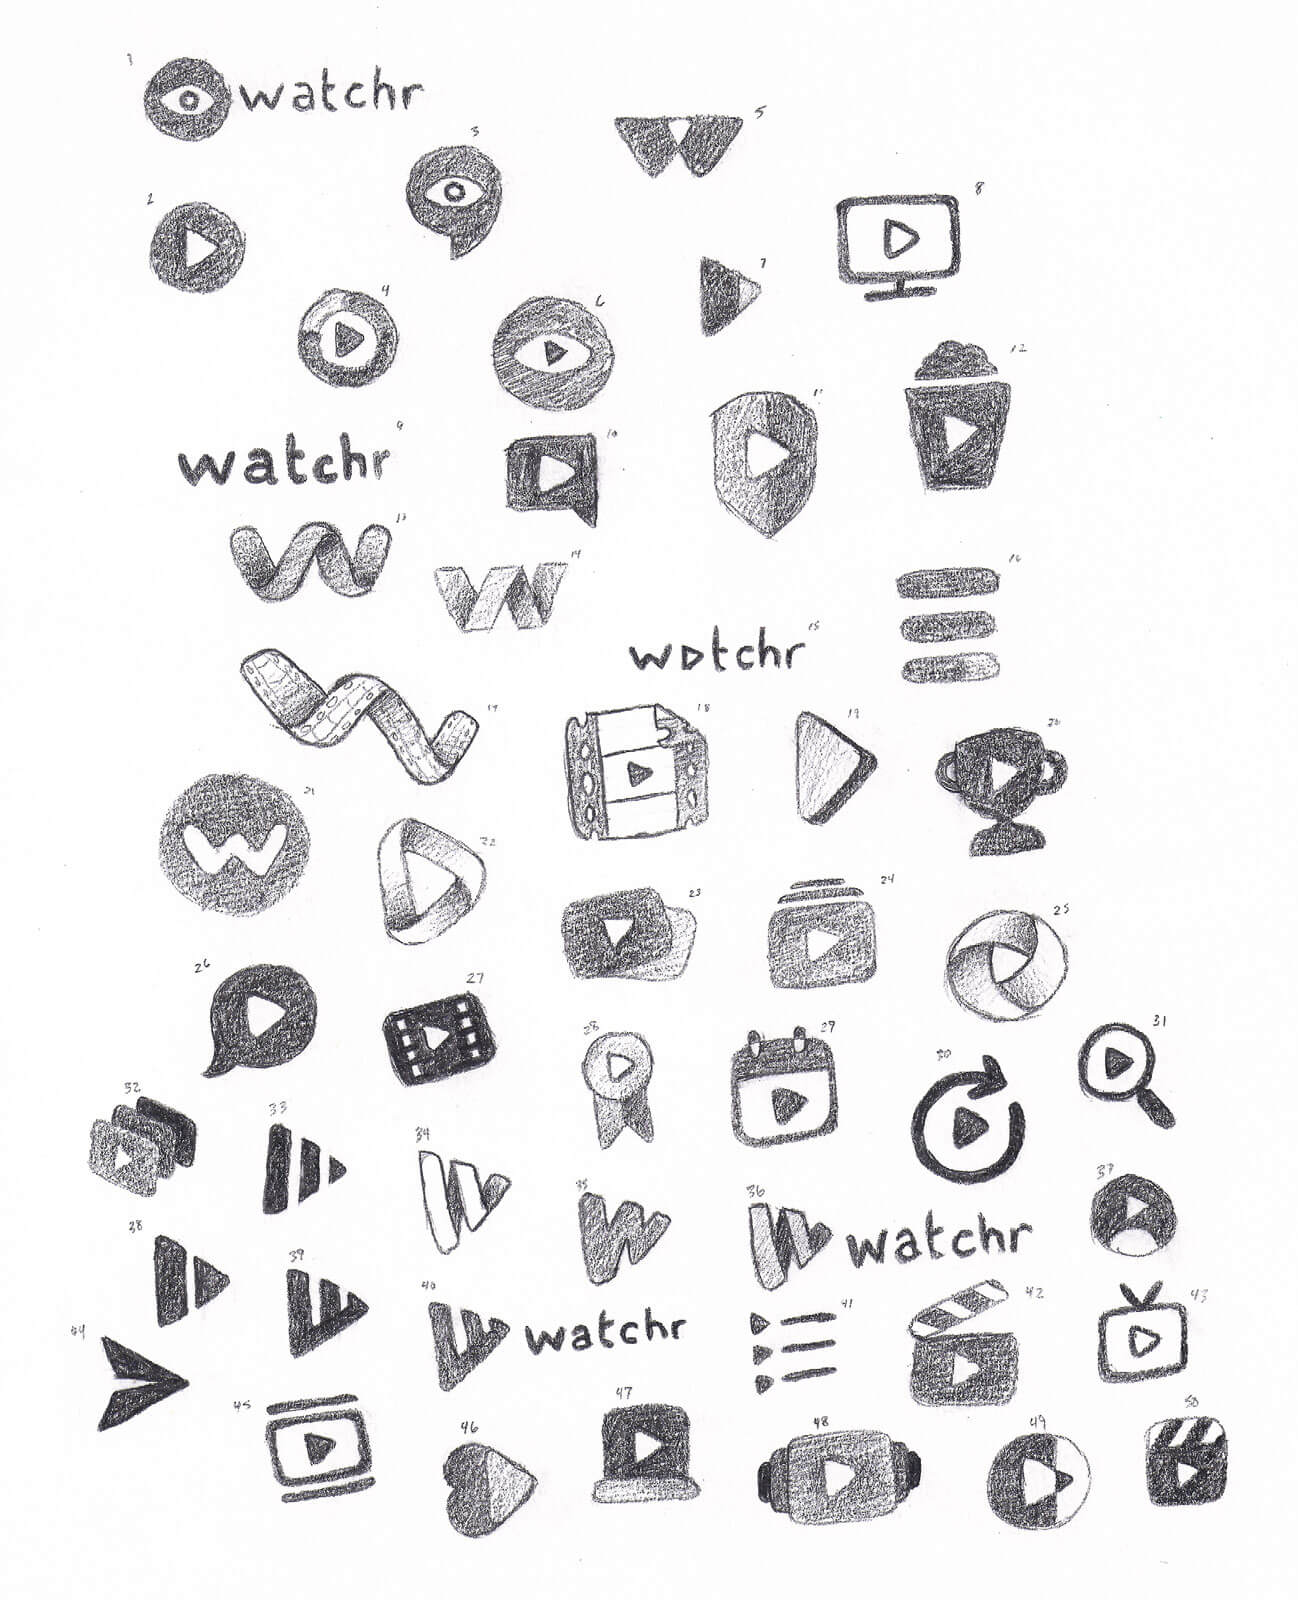 A selection of hand-drawn logo sketches